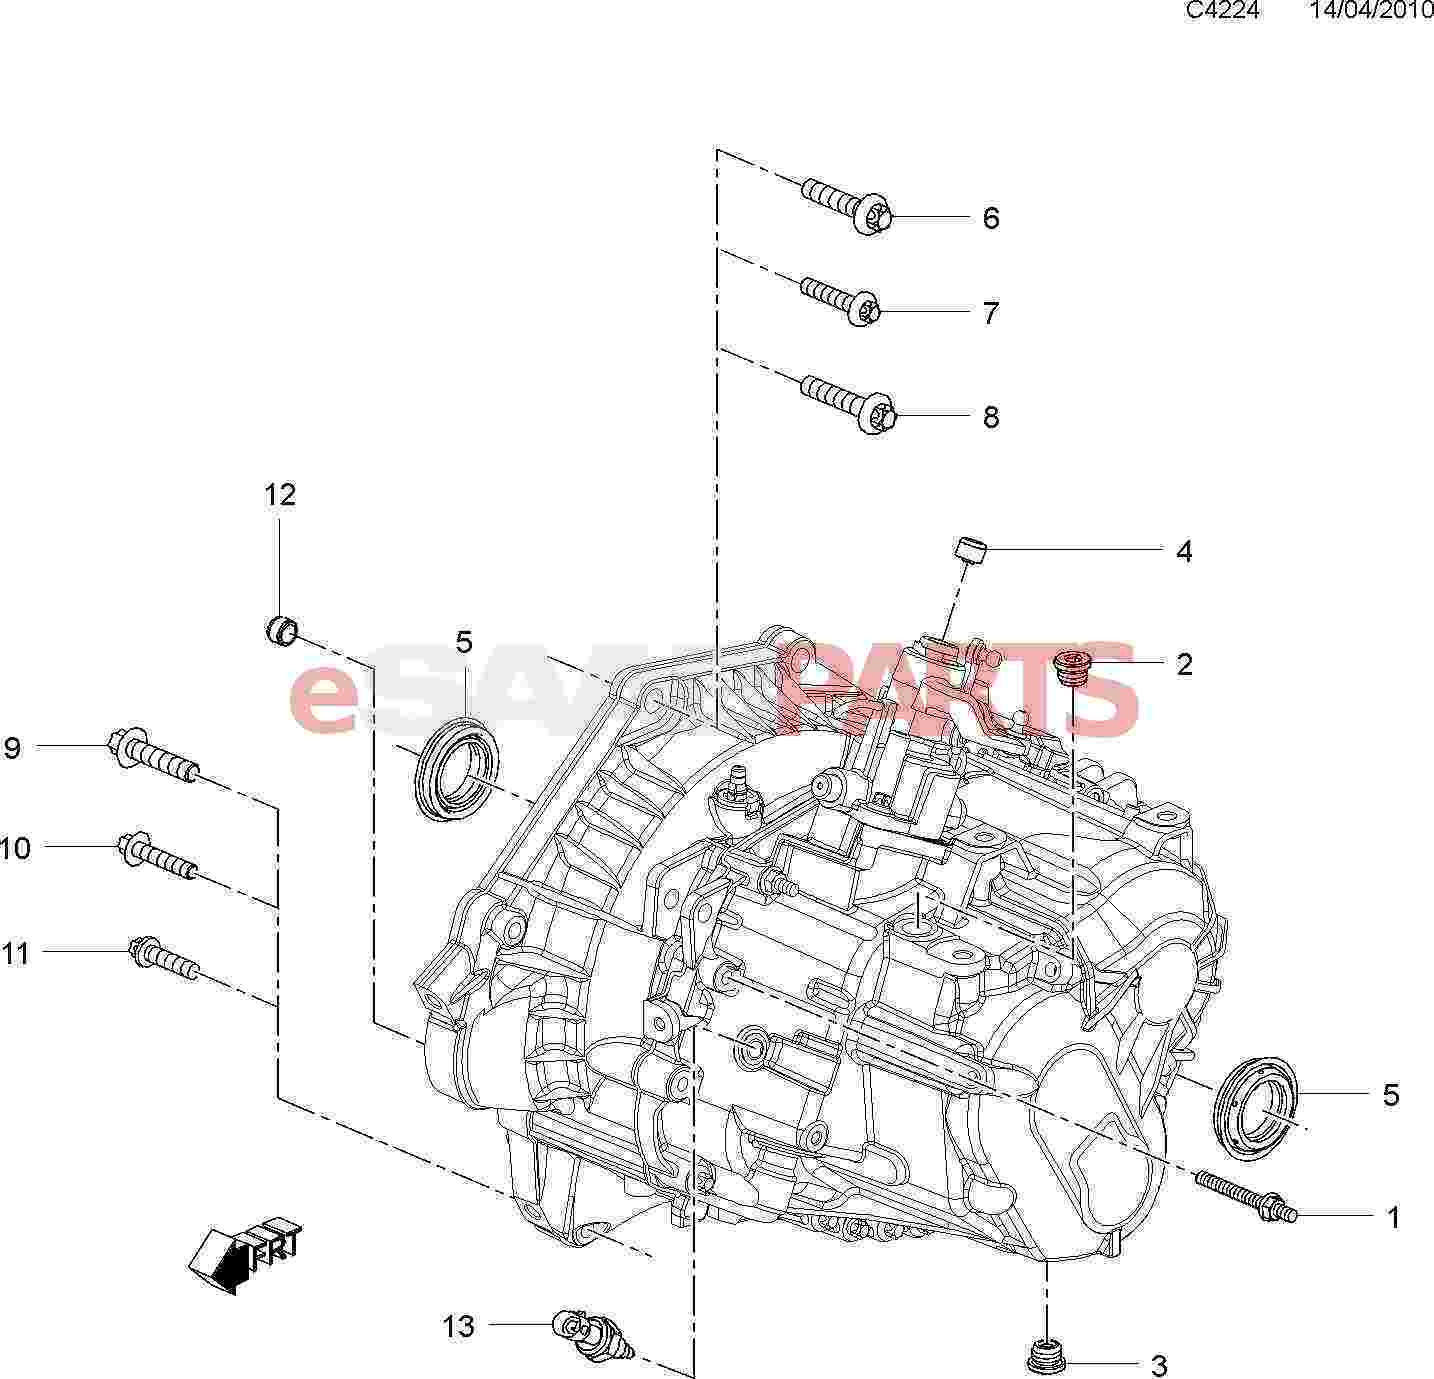 Lexus Es300 Engine Belts Diagram Lexus GX470 Belt Diagram